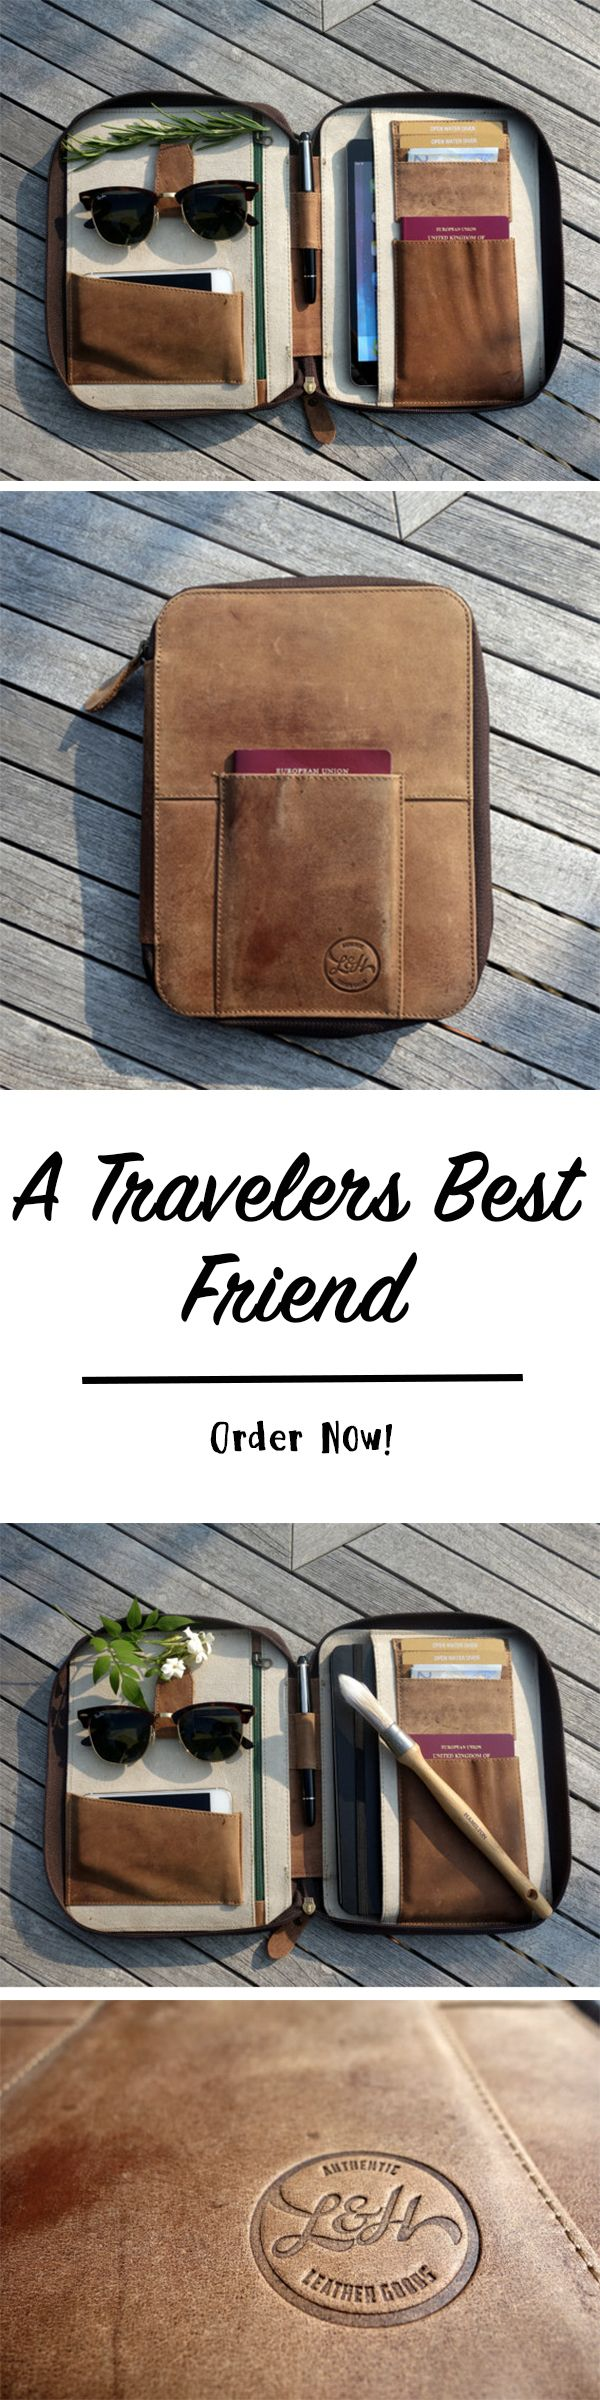 Are you an organized traveler? Well this is the travel case for you!